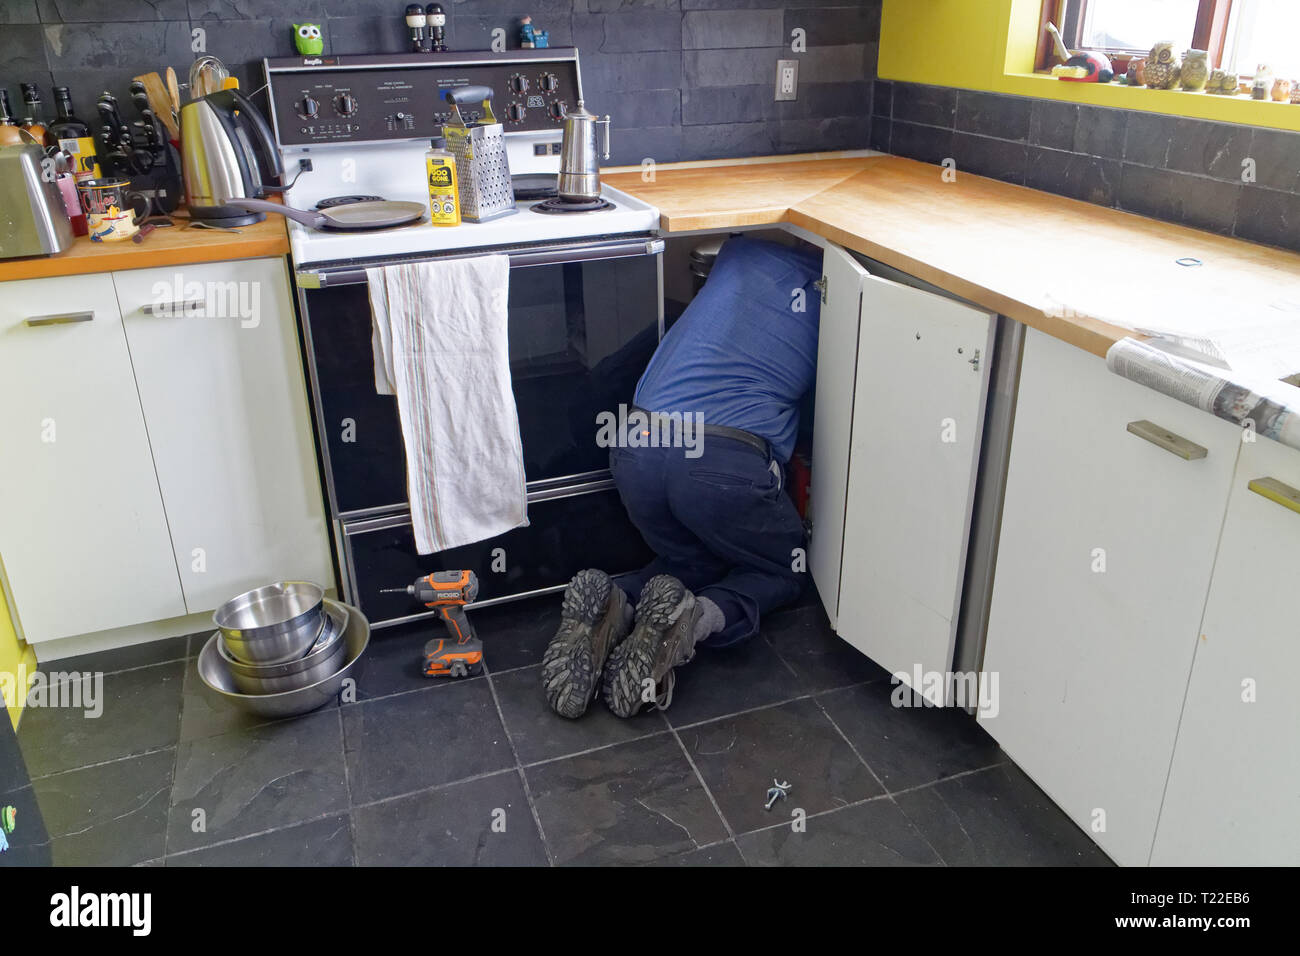 A workman's rear end sticking out of a cupboard as he does work inside it. - Stock Image